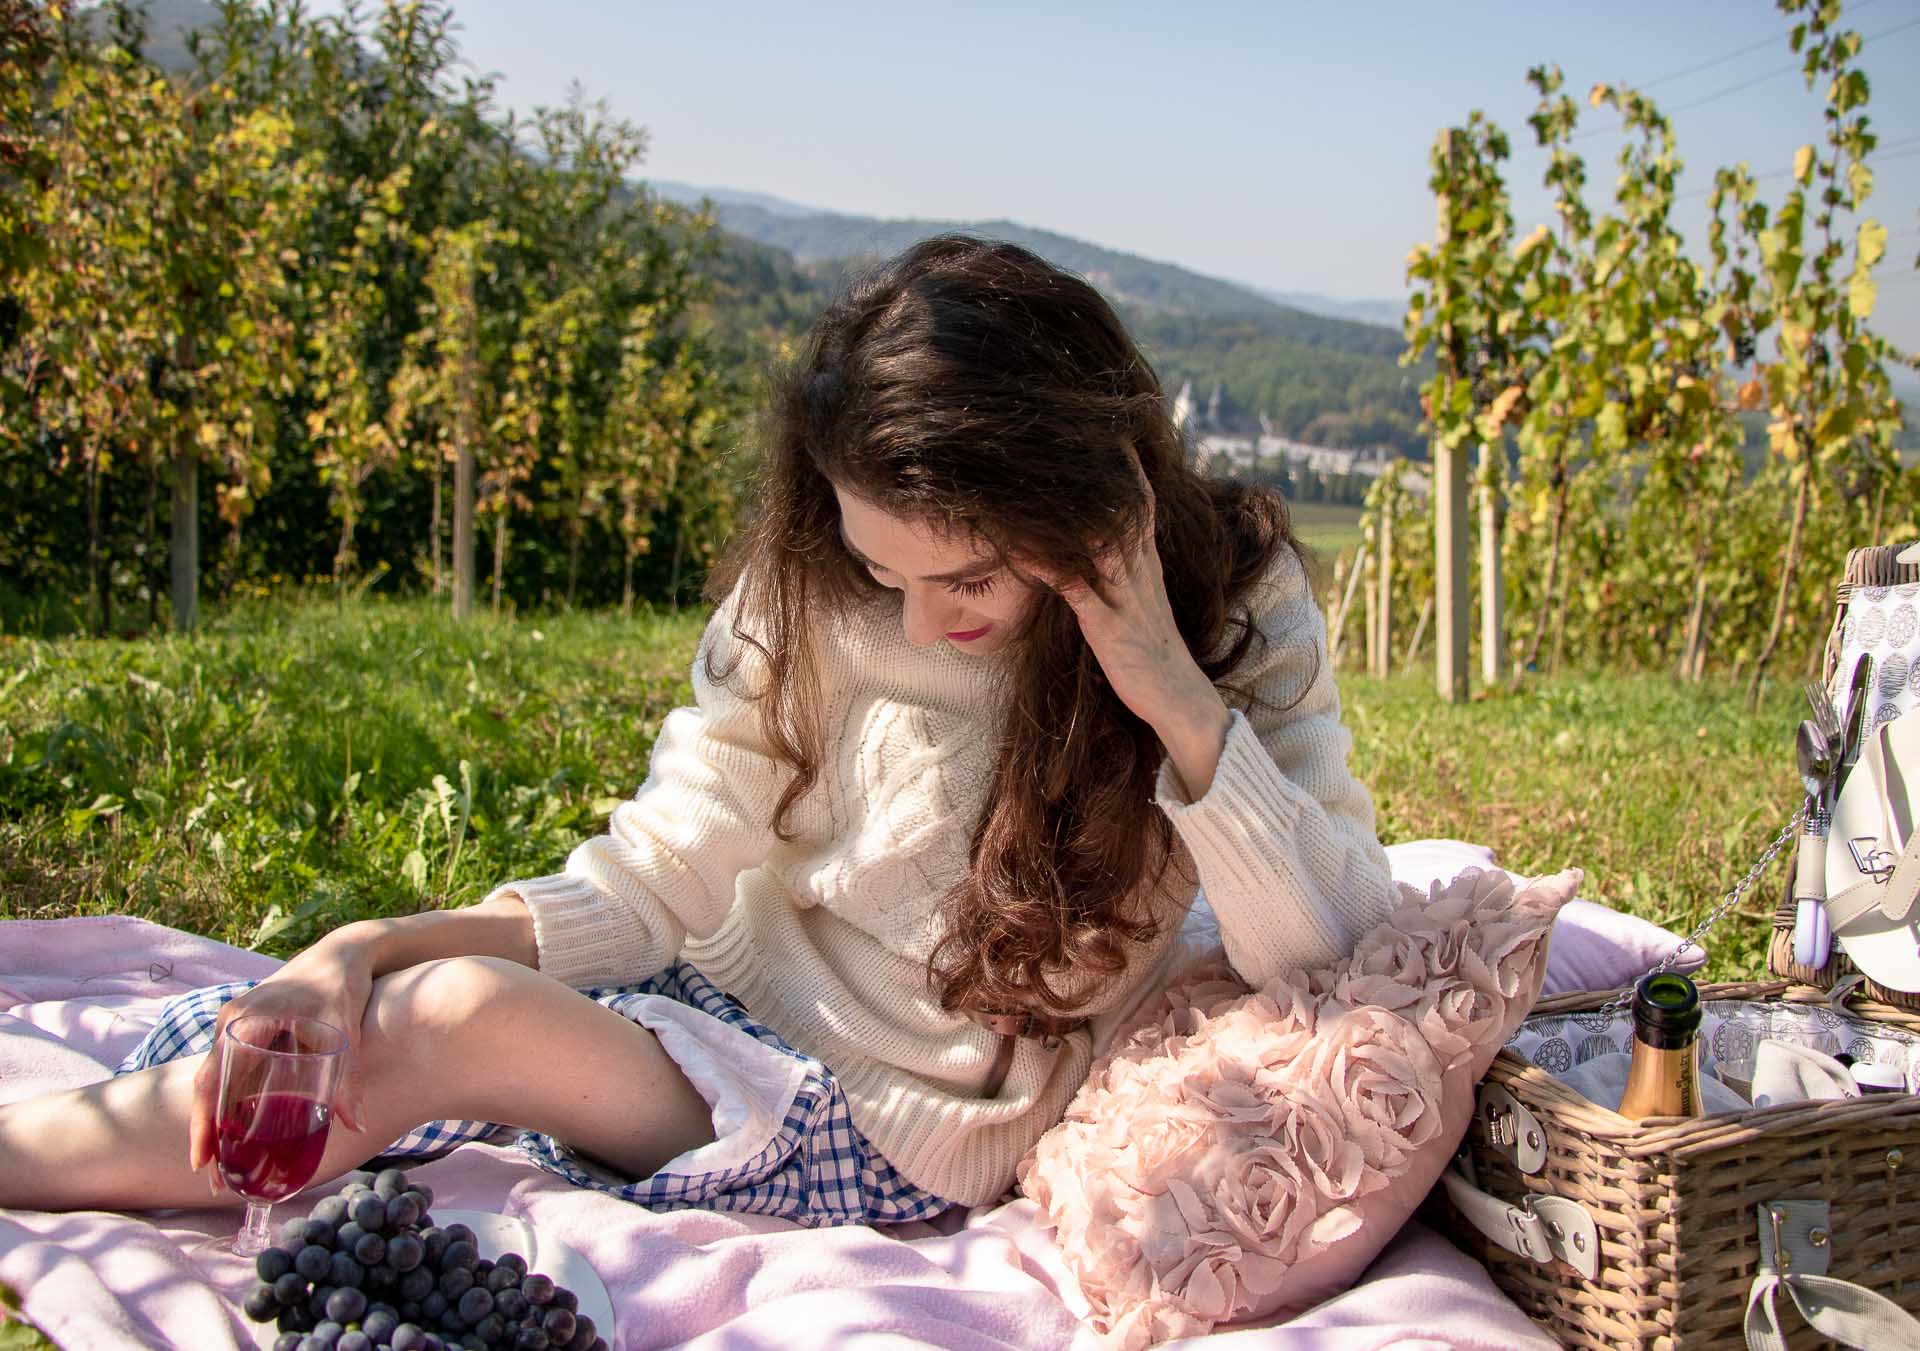 Beautiful Slovenian Fashion Blogger Veronika Lipar of Brunette from Wall Street wearing blue and white check button down Mango dress, oversized white turtleneck sweater, dangling belt, sitting on a picnic blanket in vineyard